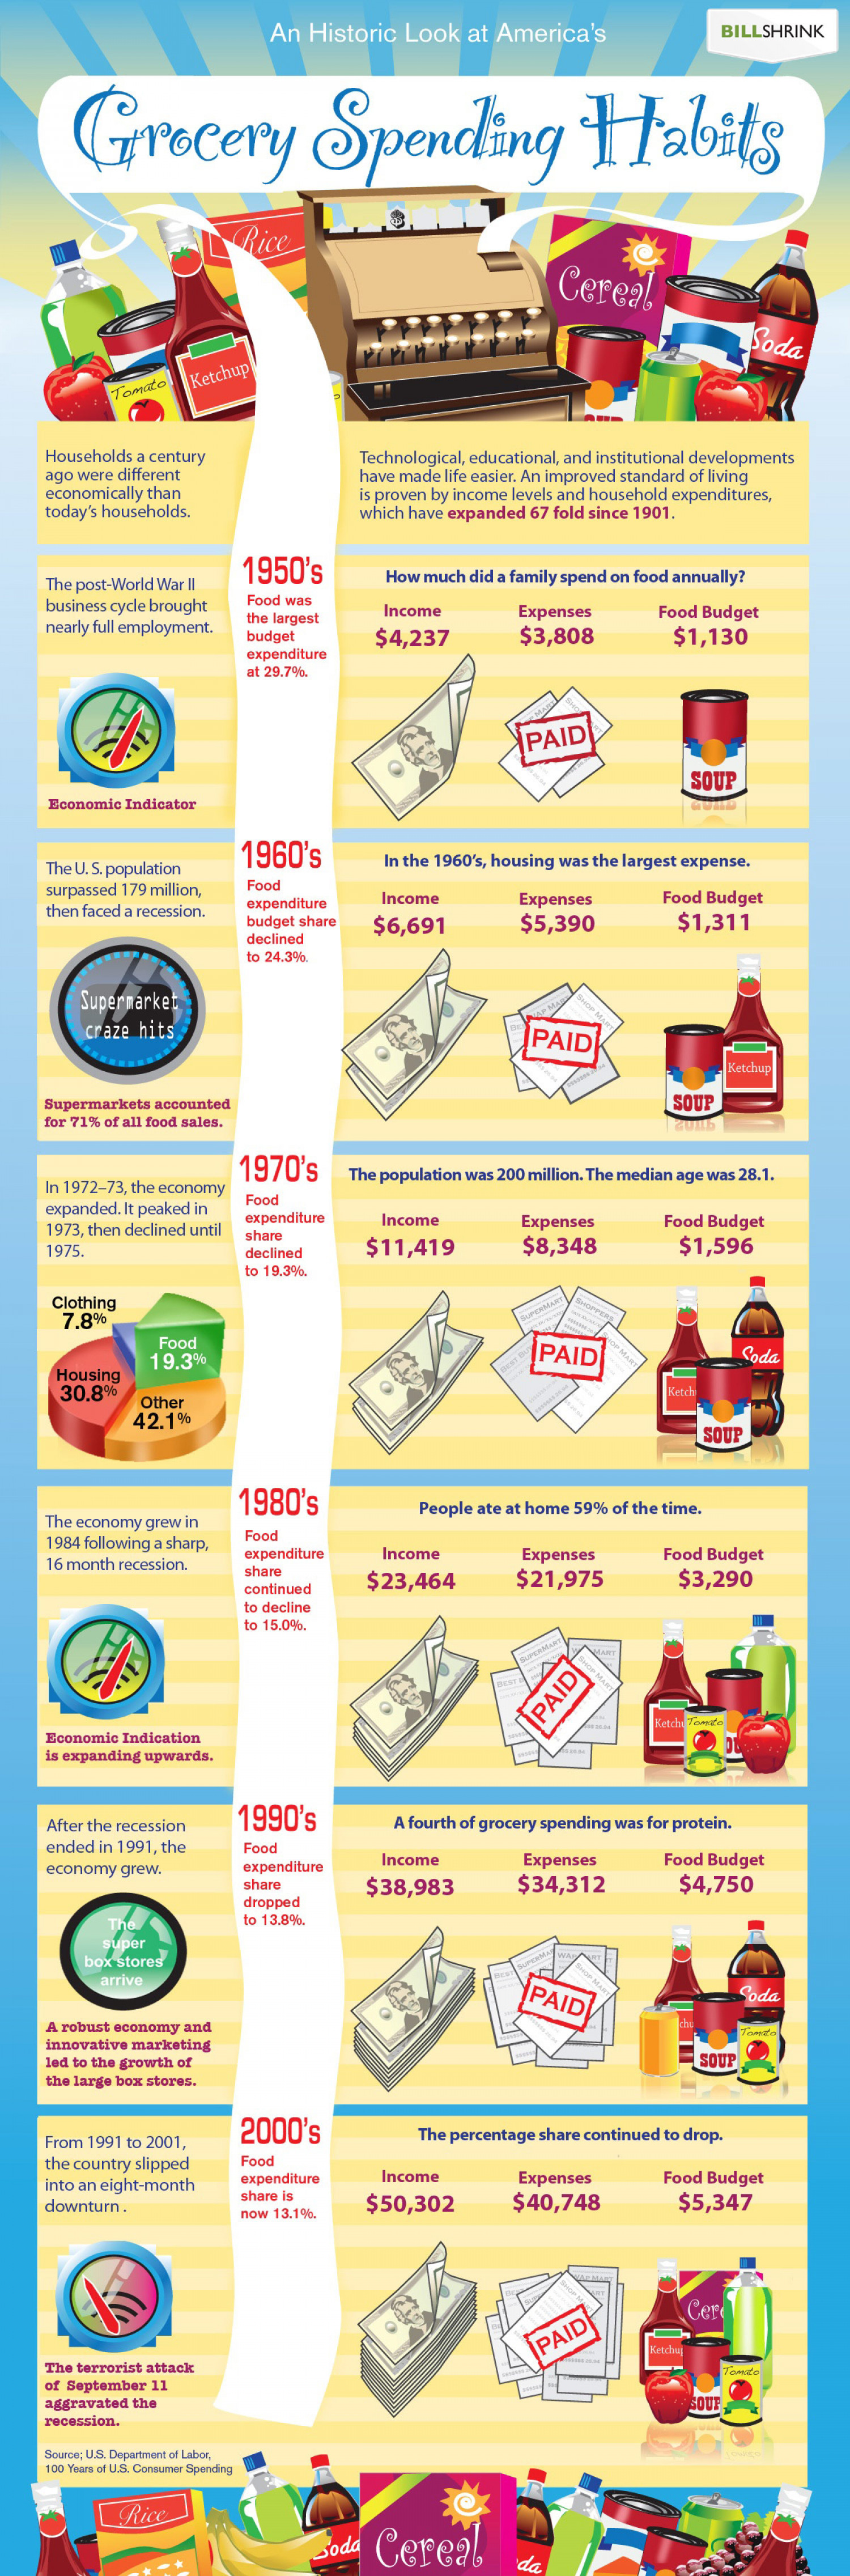 A Historic Look at America's Grocery Spending Habits Infographic